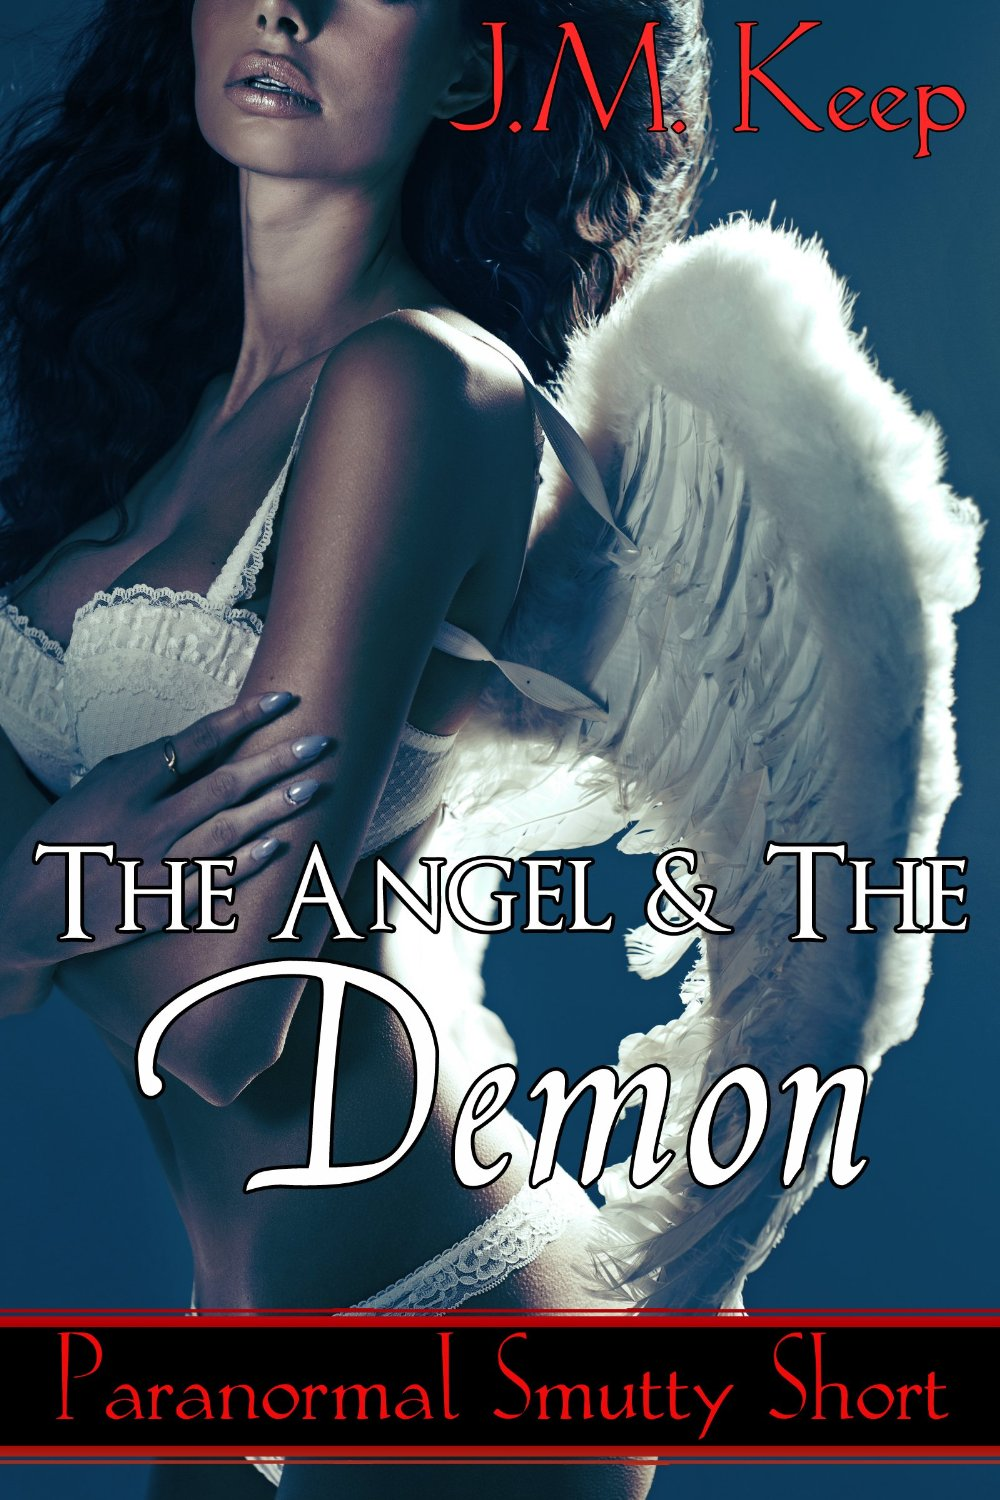 The Angel and the Demon: Paranormal Smutty Short